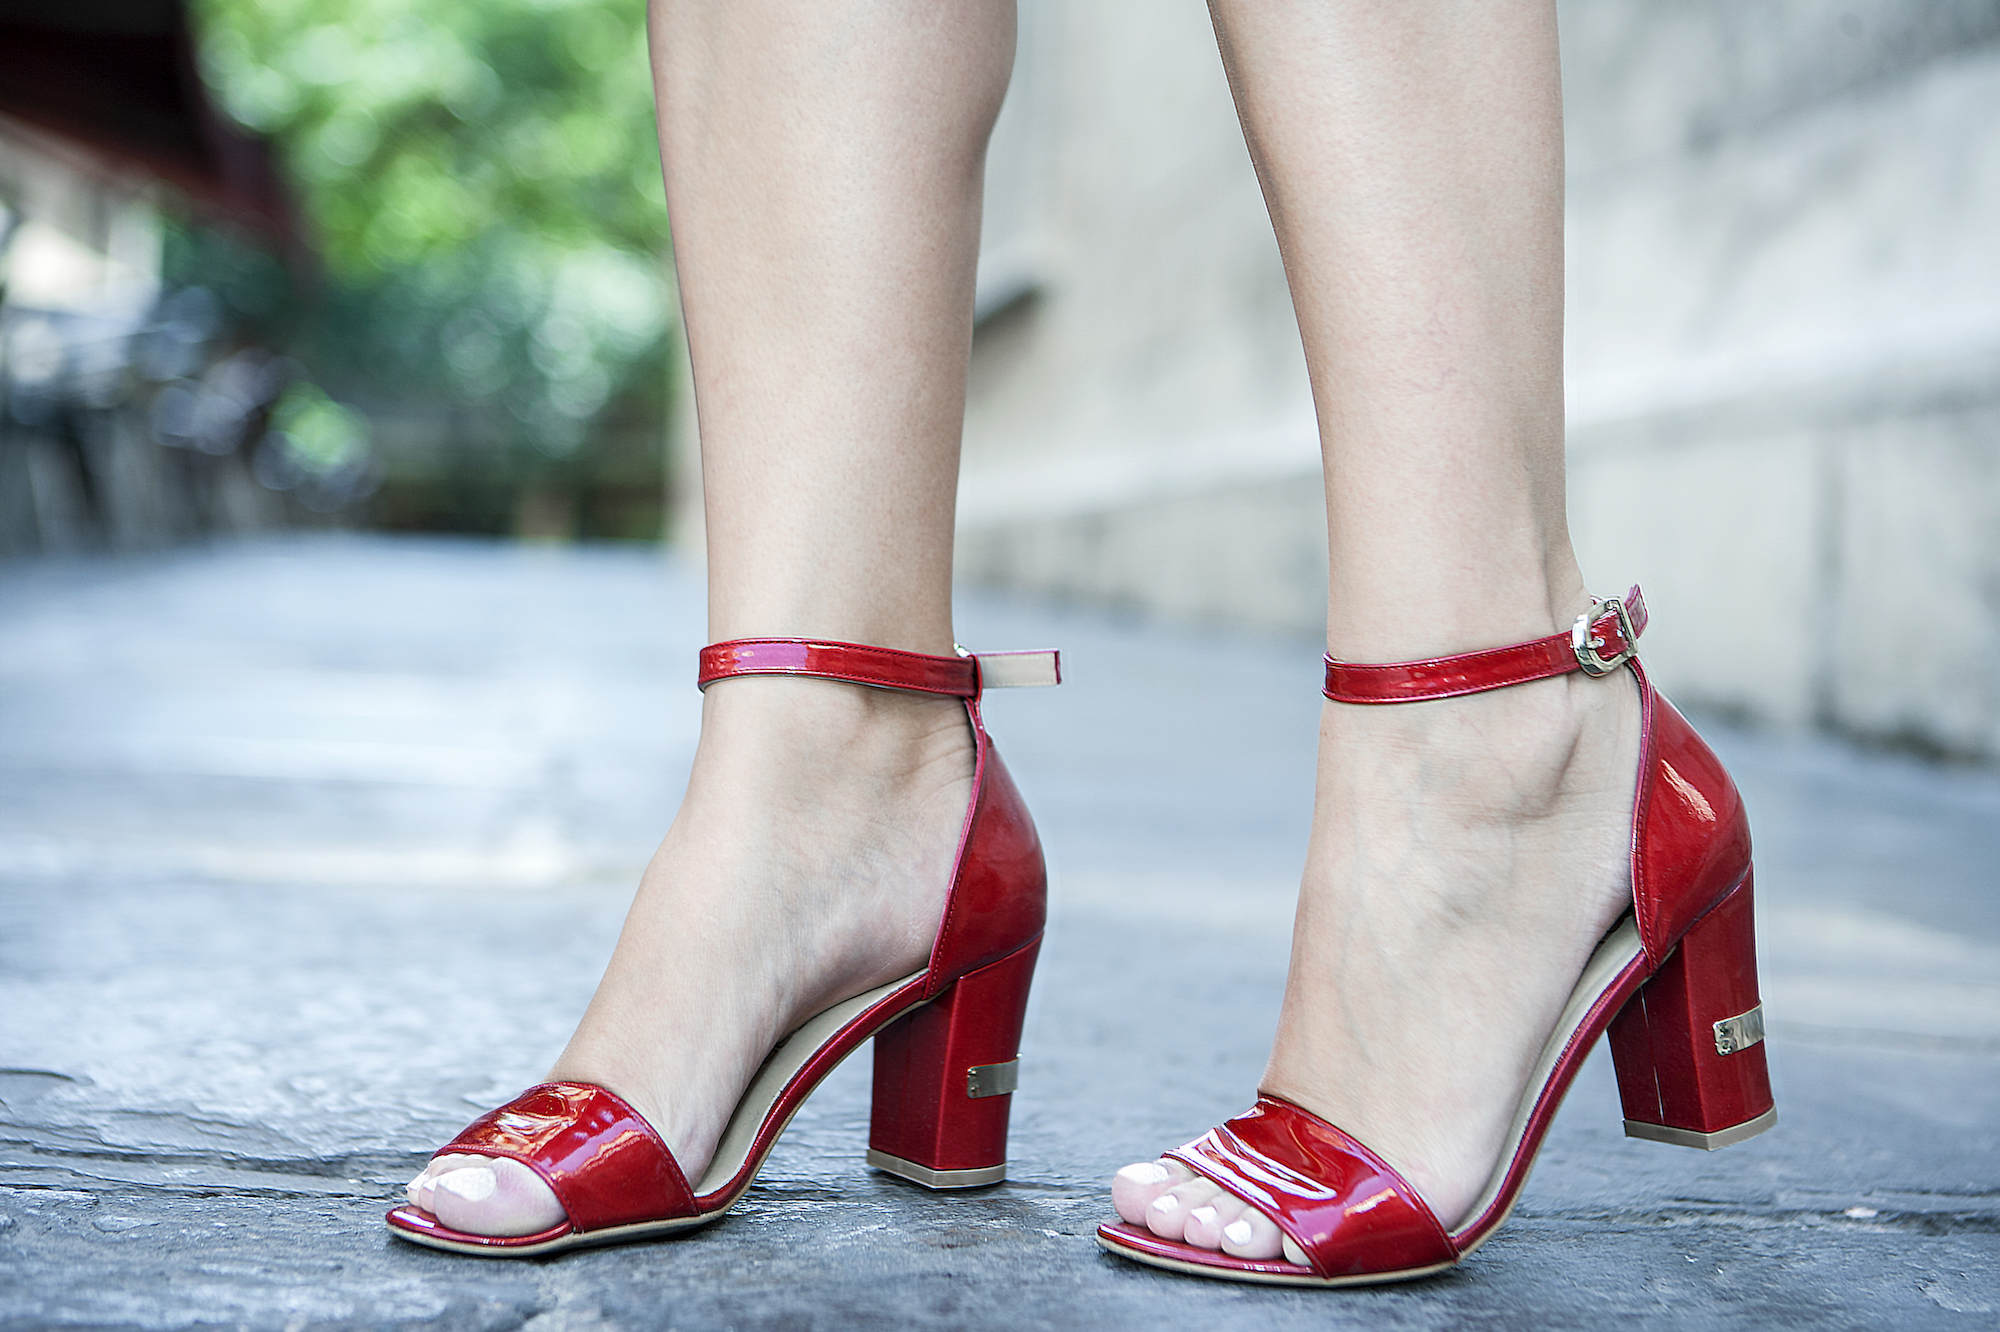 red shoes with golden details